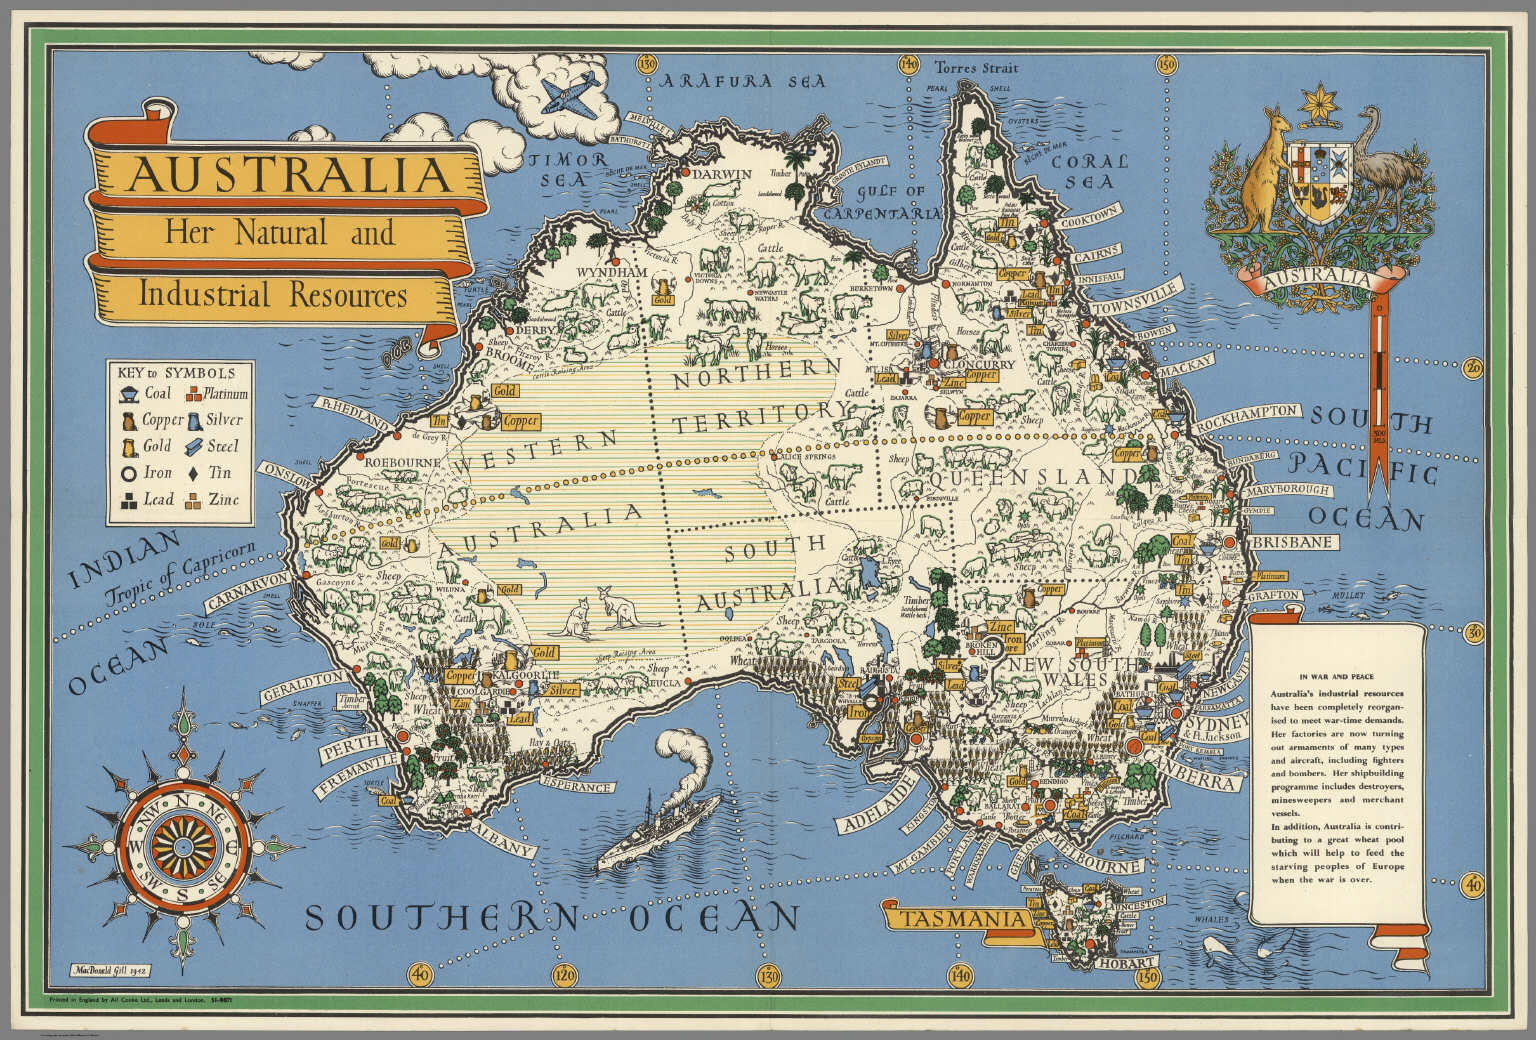 australia her natural and industrial resources